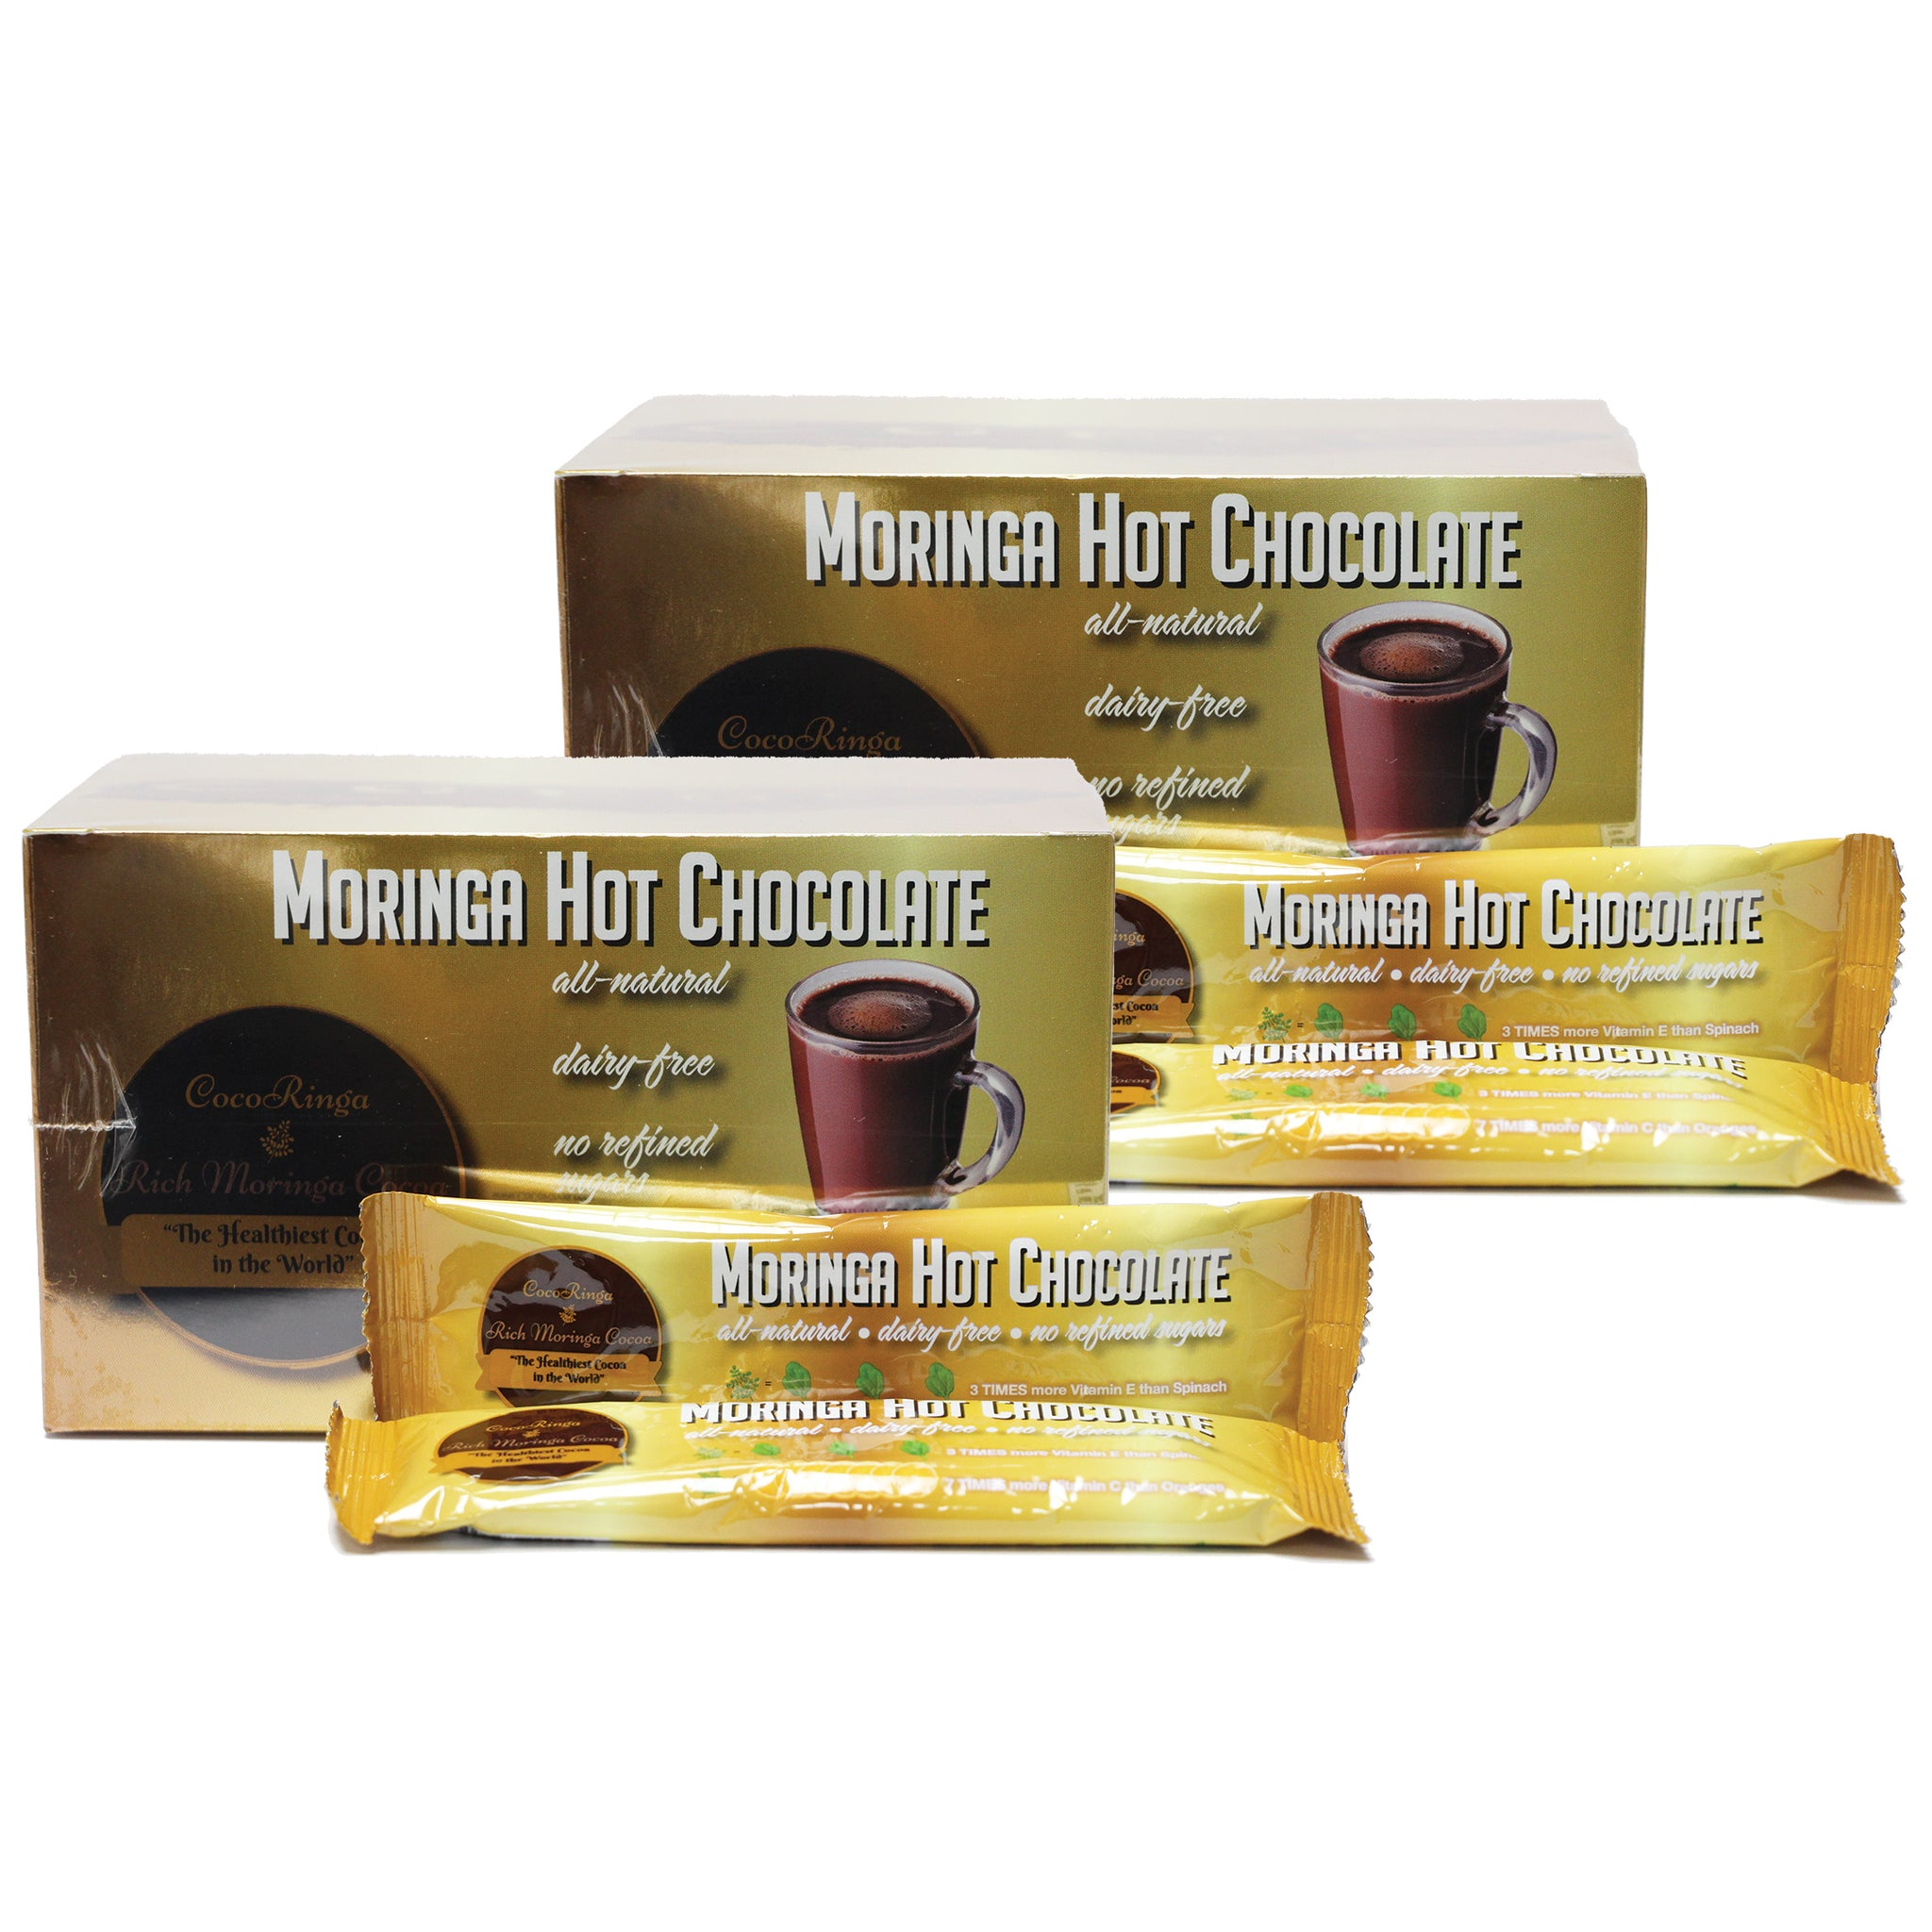 CocoRinga - Moringa Hot Chocolate 2-Pack - Foods Alive